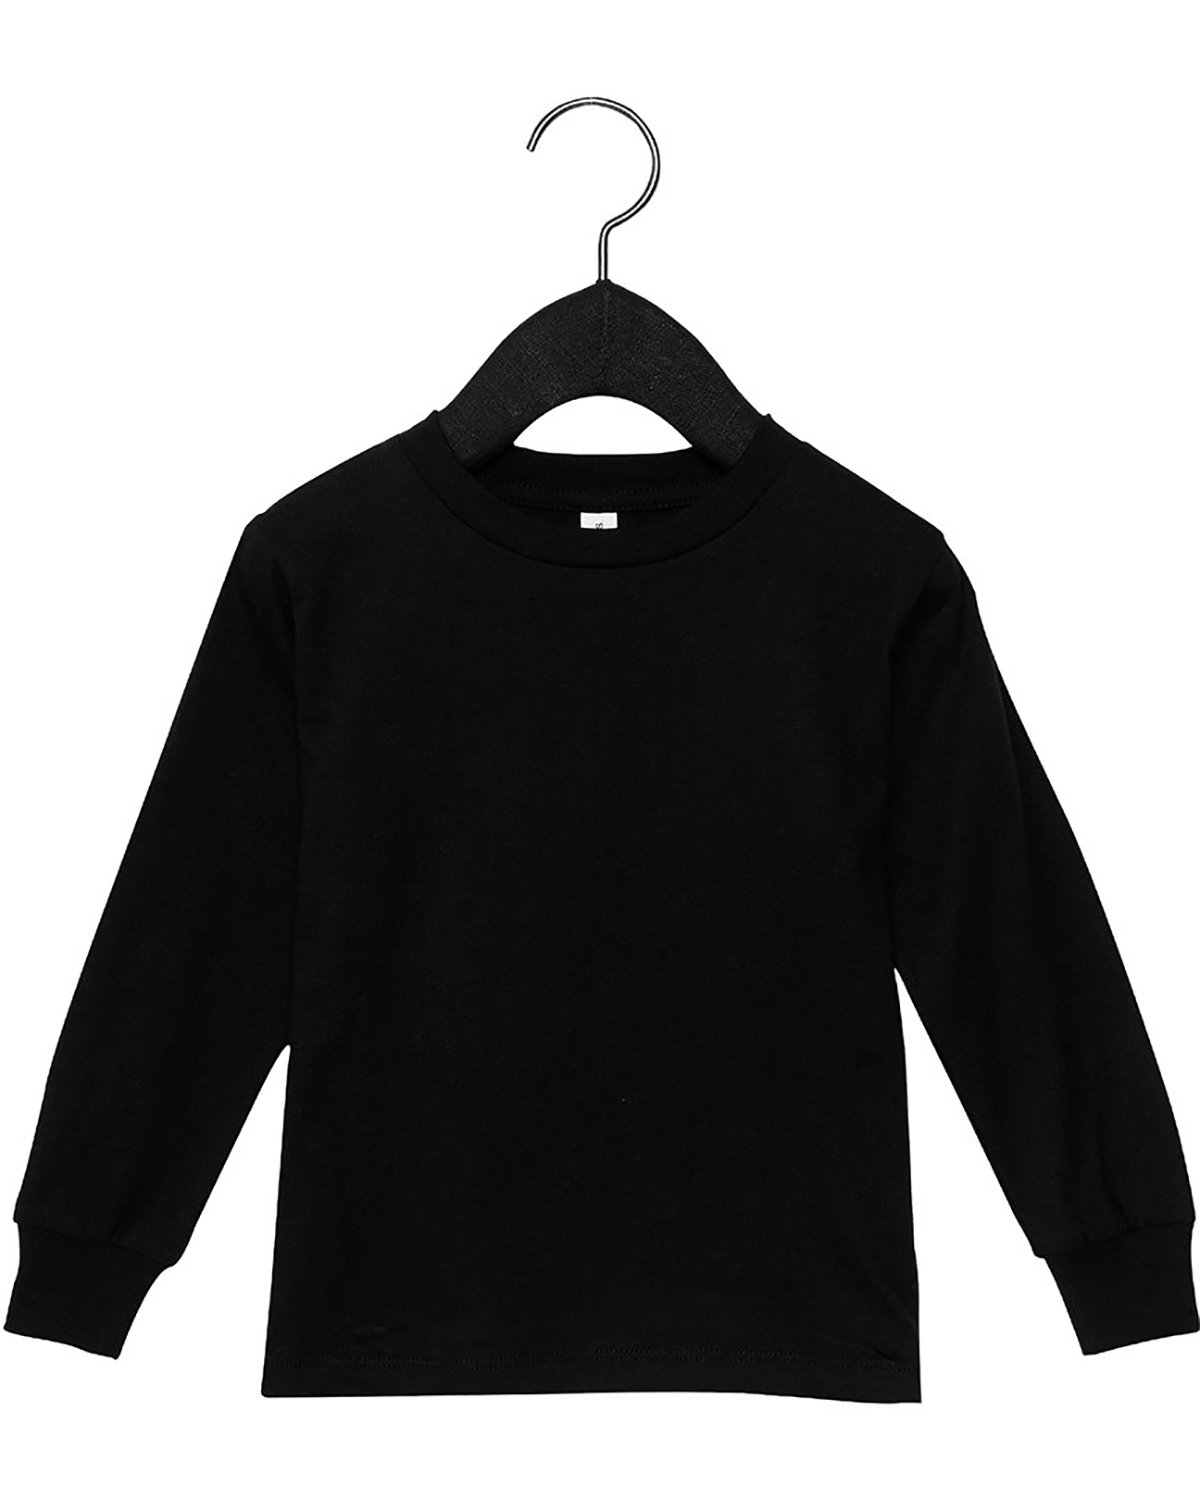 Bella + Canvas Youth Toddler Jersey Long Sleeve T-Shirt BLACK